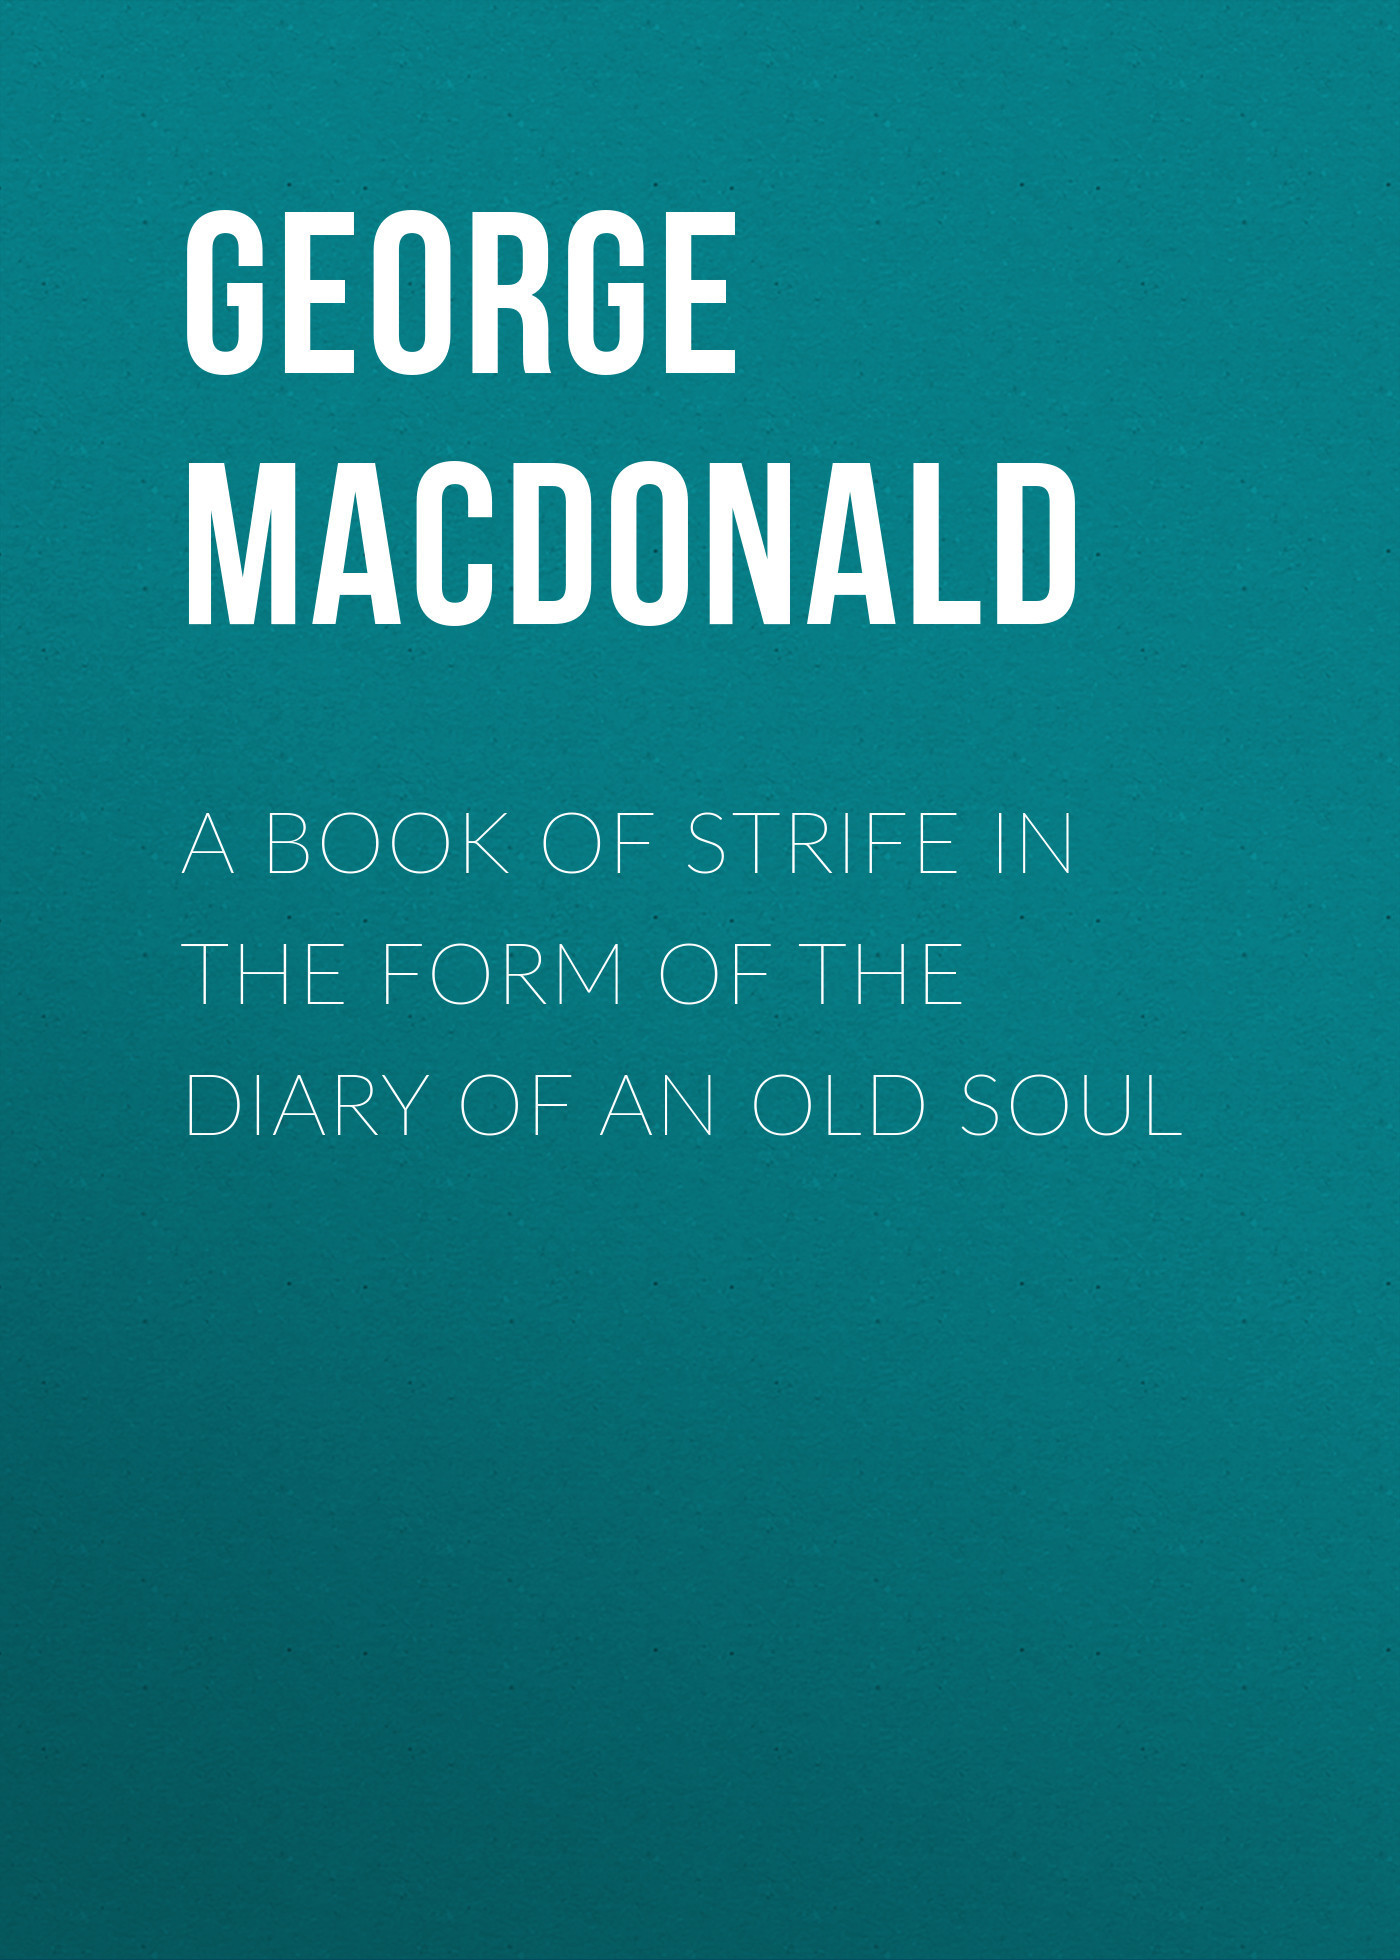 George MacDonald A Book of Strife in the Form of The Diary of an Old Soul